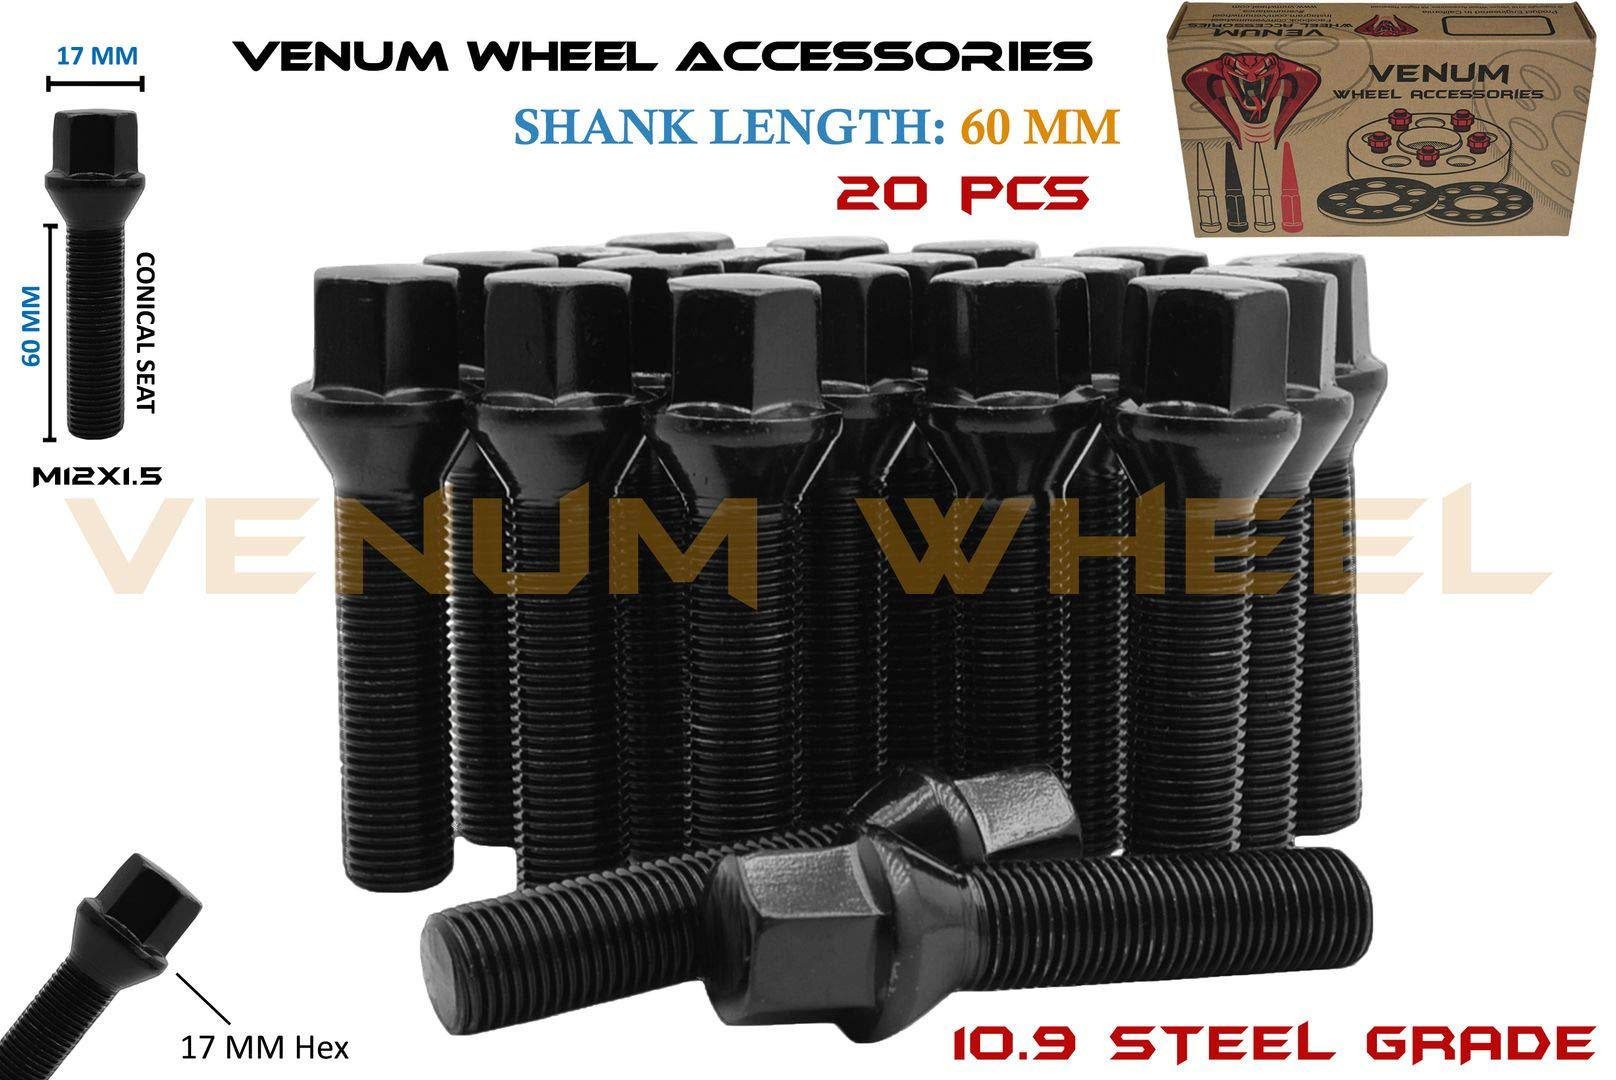 Venum wheel accessories 20 Pcs 12x1.5 (60 mm Extended Shank) Black Powder Coated Conical Seat Lug Bolts Works with BMW & Mercedes Benz Vehicles W/Factory & Aftermarket Wheels by Venum wheel accessories